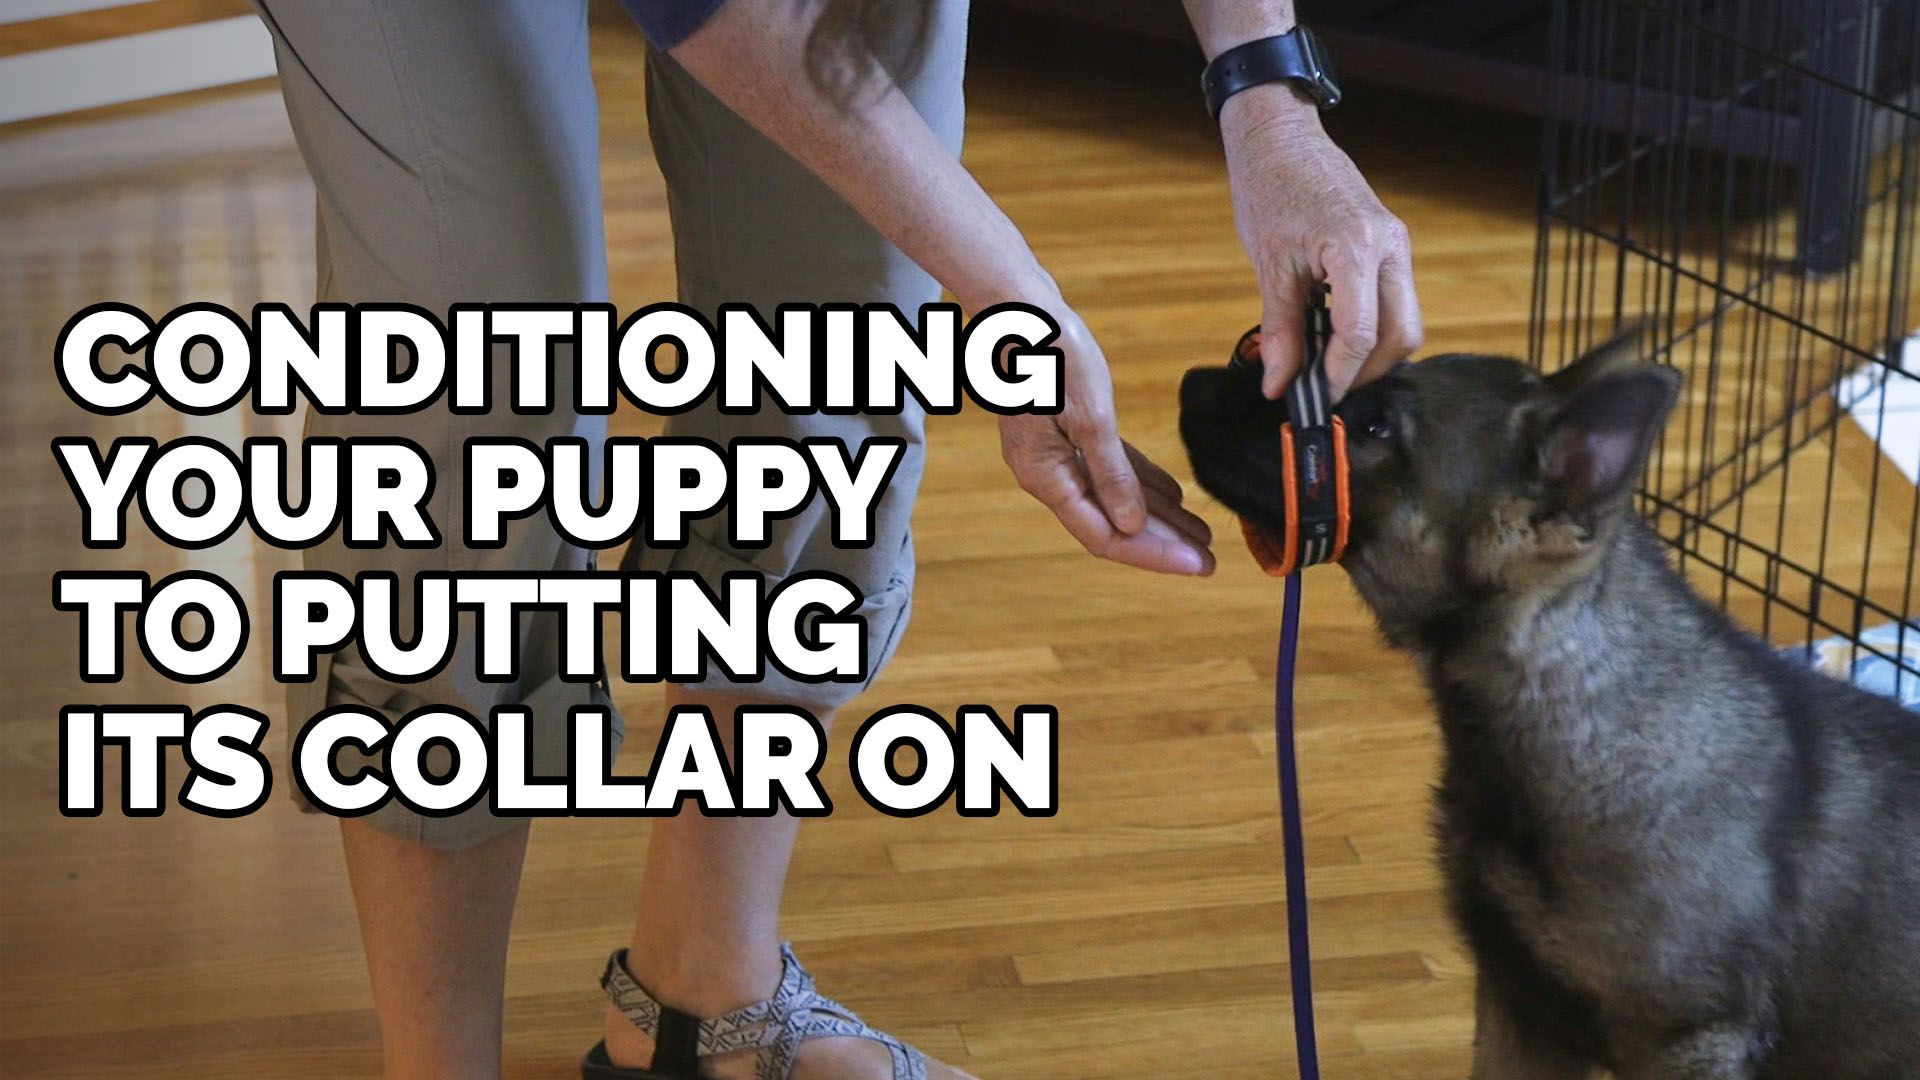 In this video, we demonstrate how to teach your puppy to